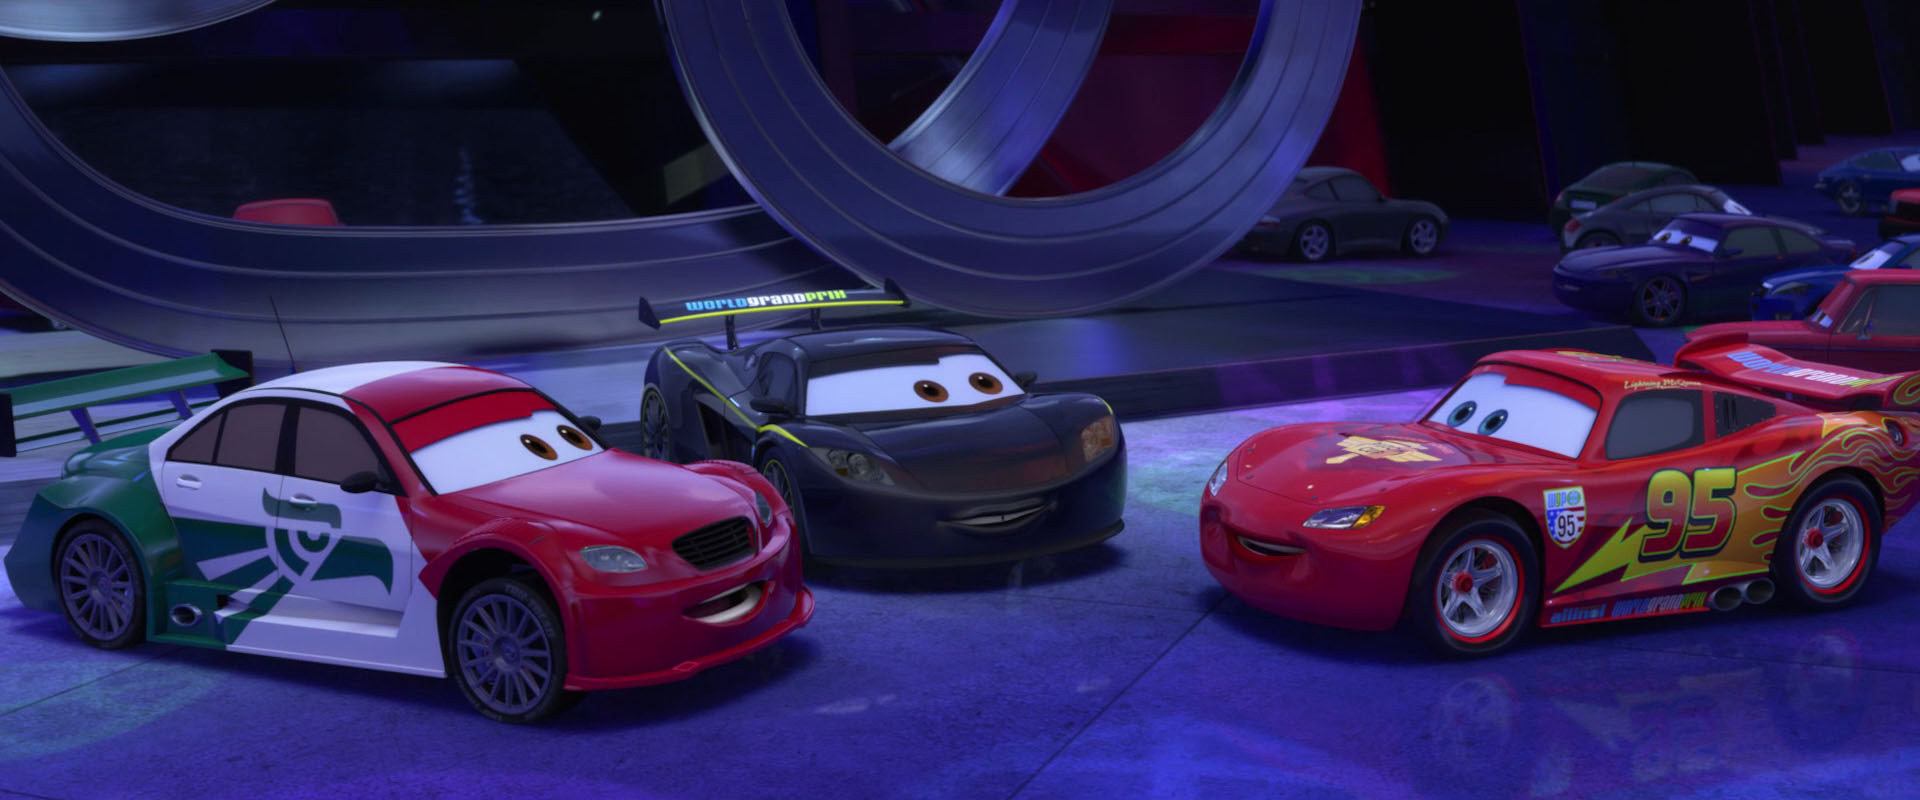 memo rojas jr personnage dans cars 2 pixar planet fr. Black Bedroom Furniture Sets. Home Design Ideas